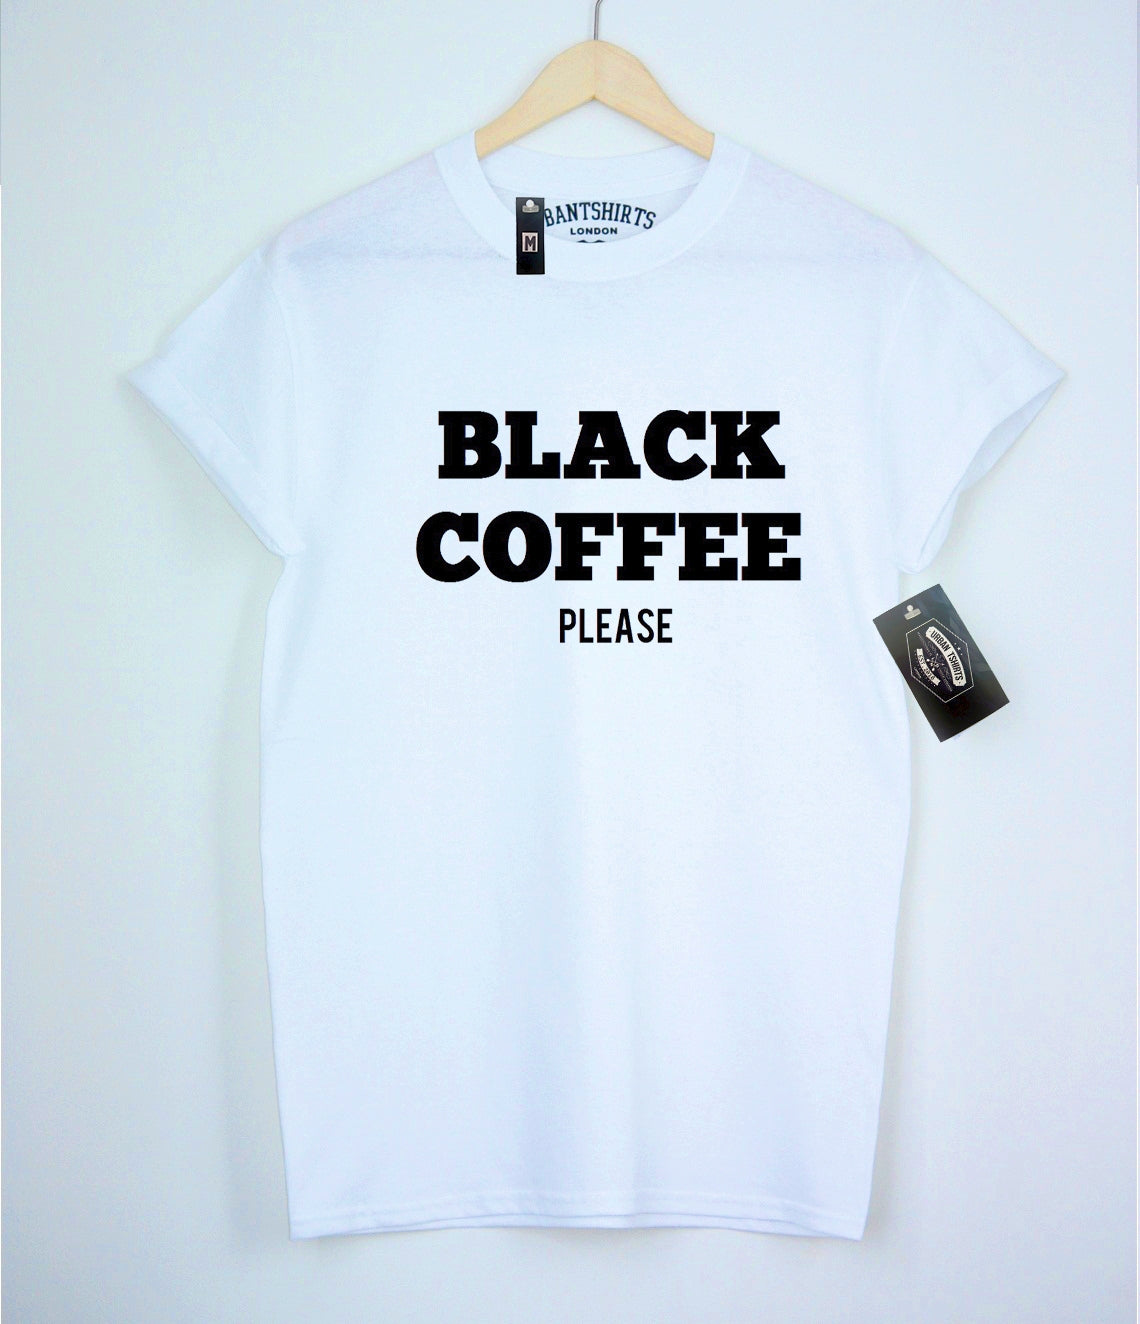 Black Coffee Please T-shirt - Urbantshirts.co.uk